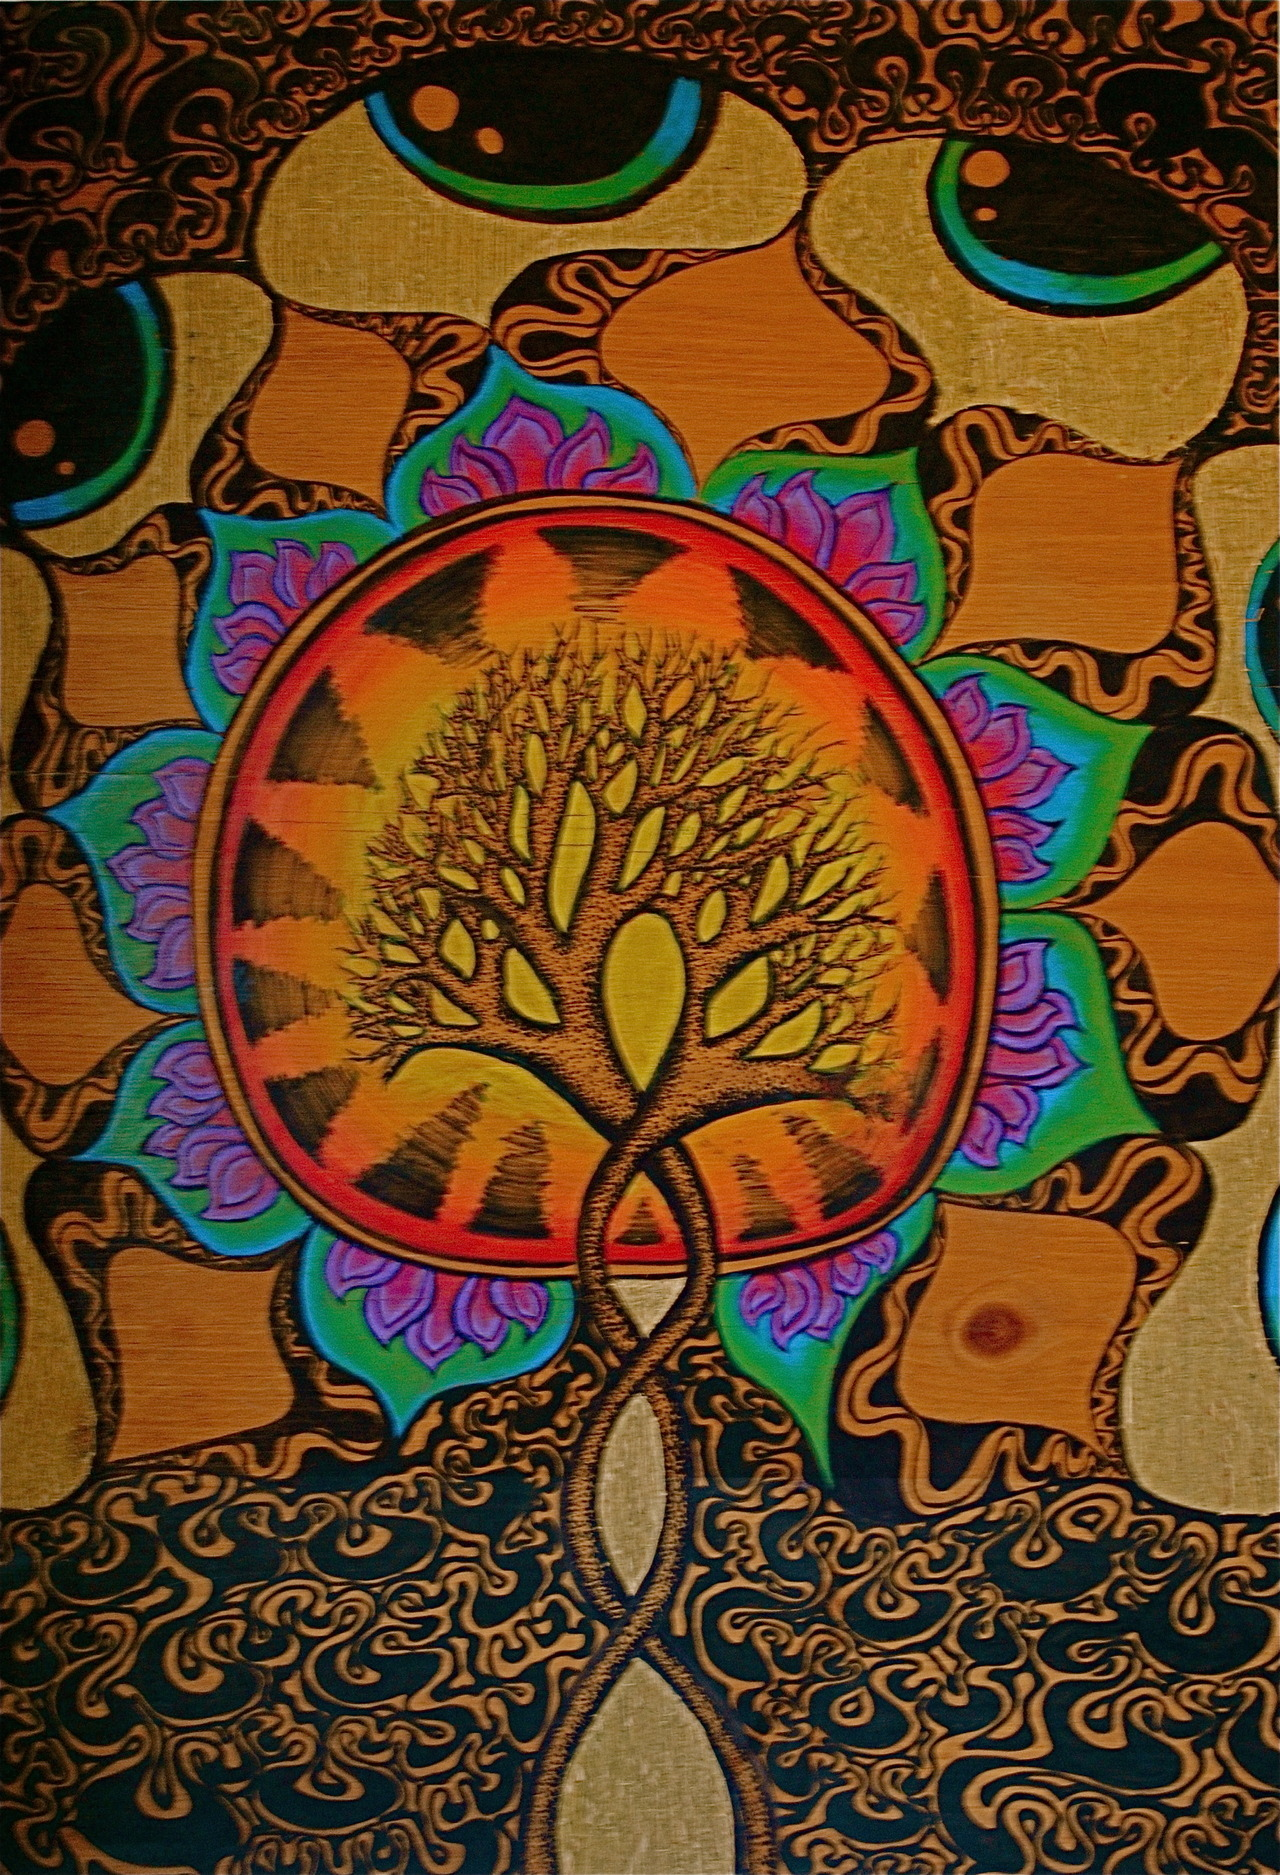 mentalalchemy:  alexhillchill submitted: DNA tree of life